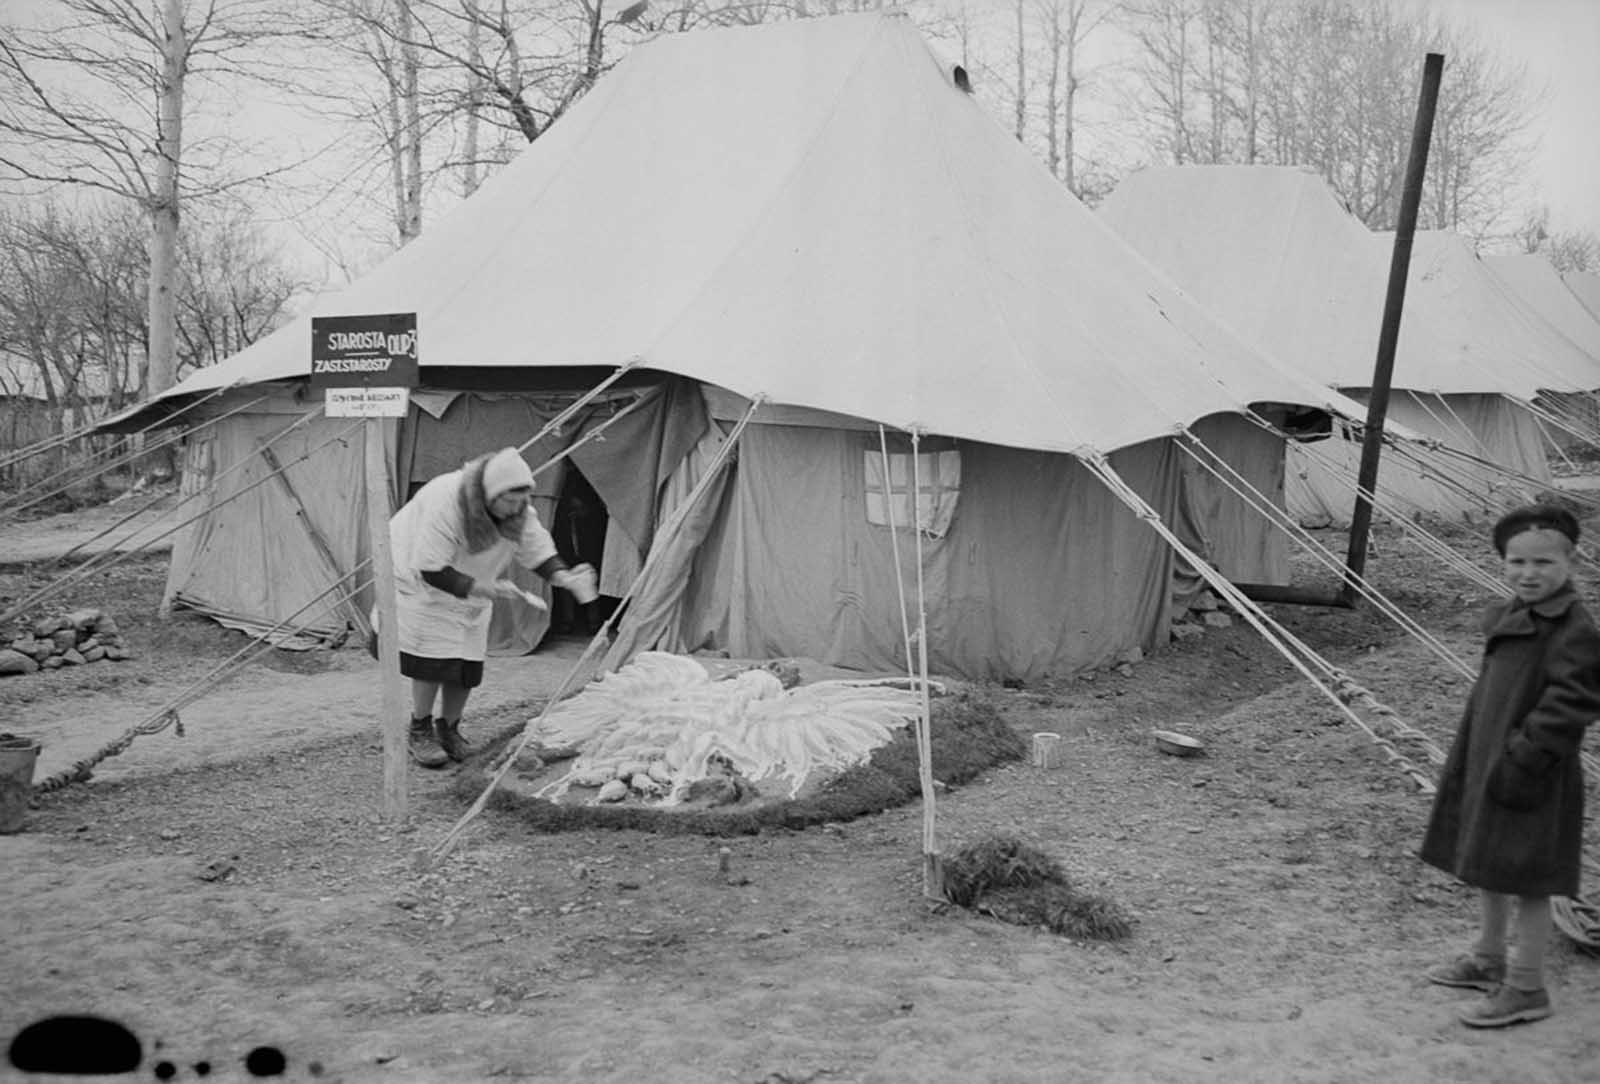 A woman decorates the front yard of her tent with the Polish national eagle.